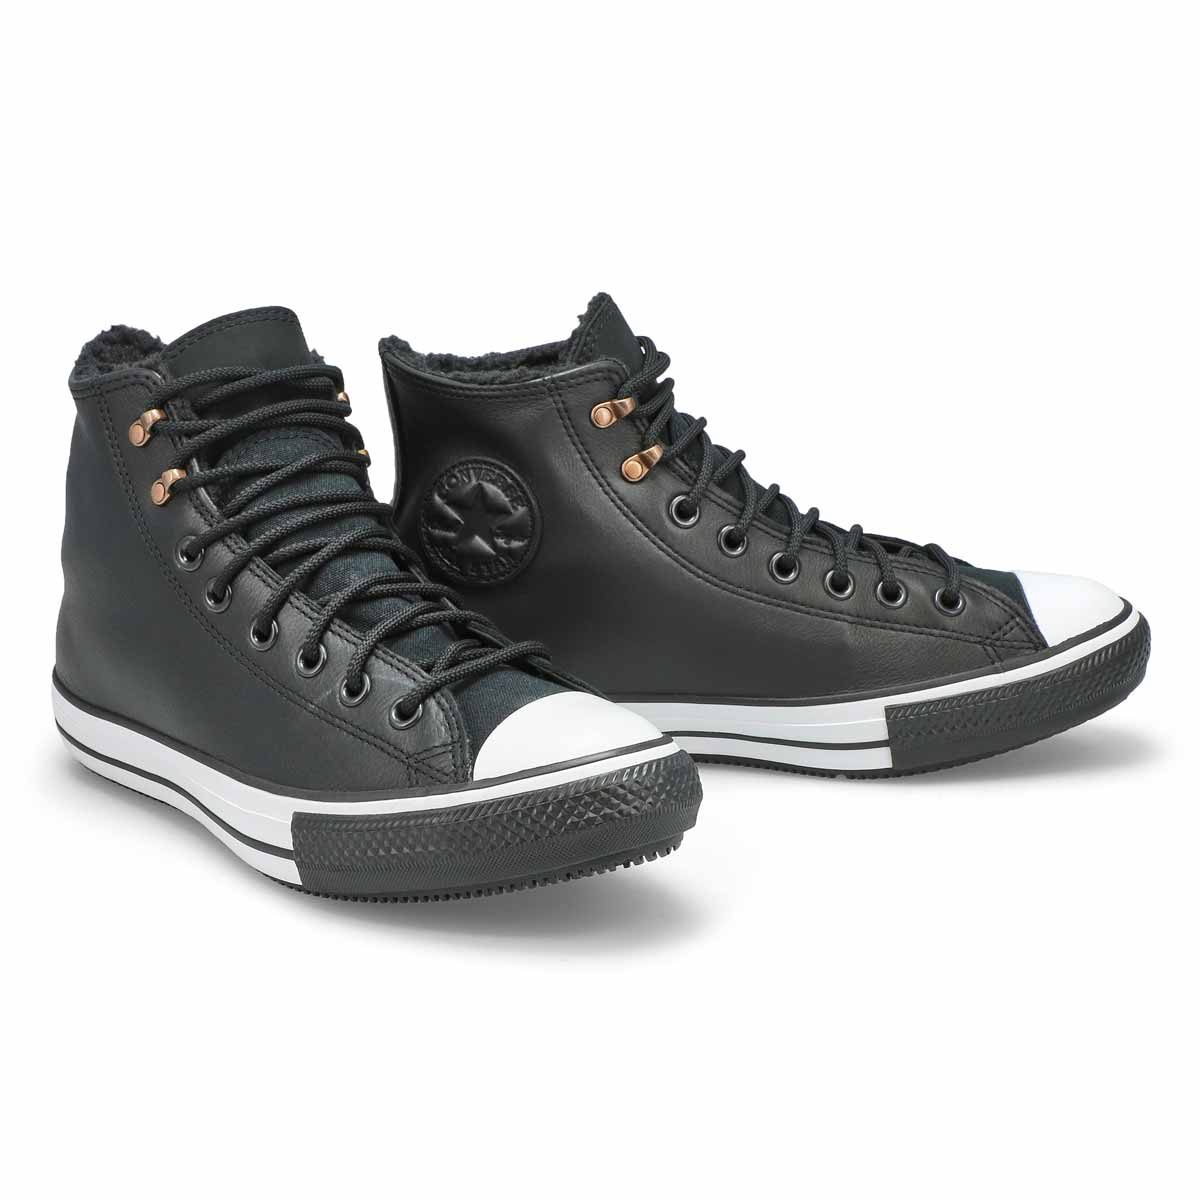 Mns CTAS Winter Hi blk/wht wtpf  boot